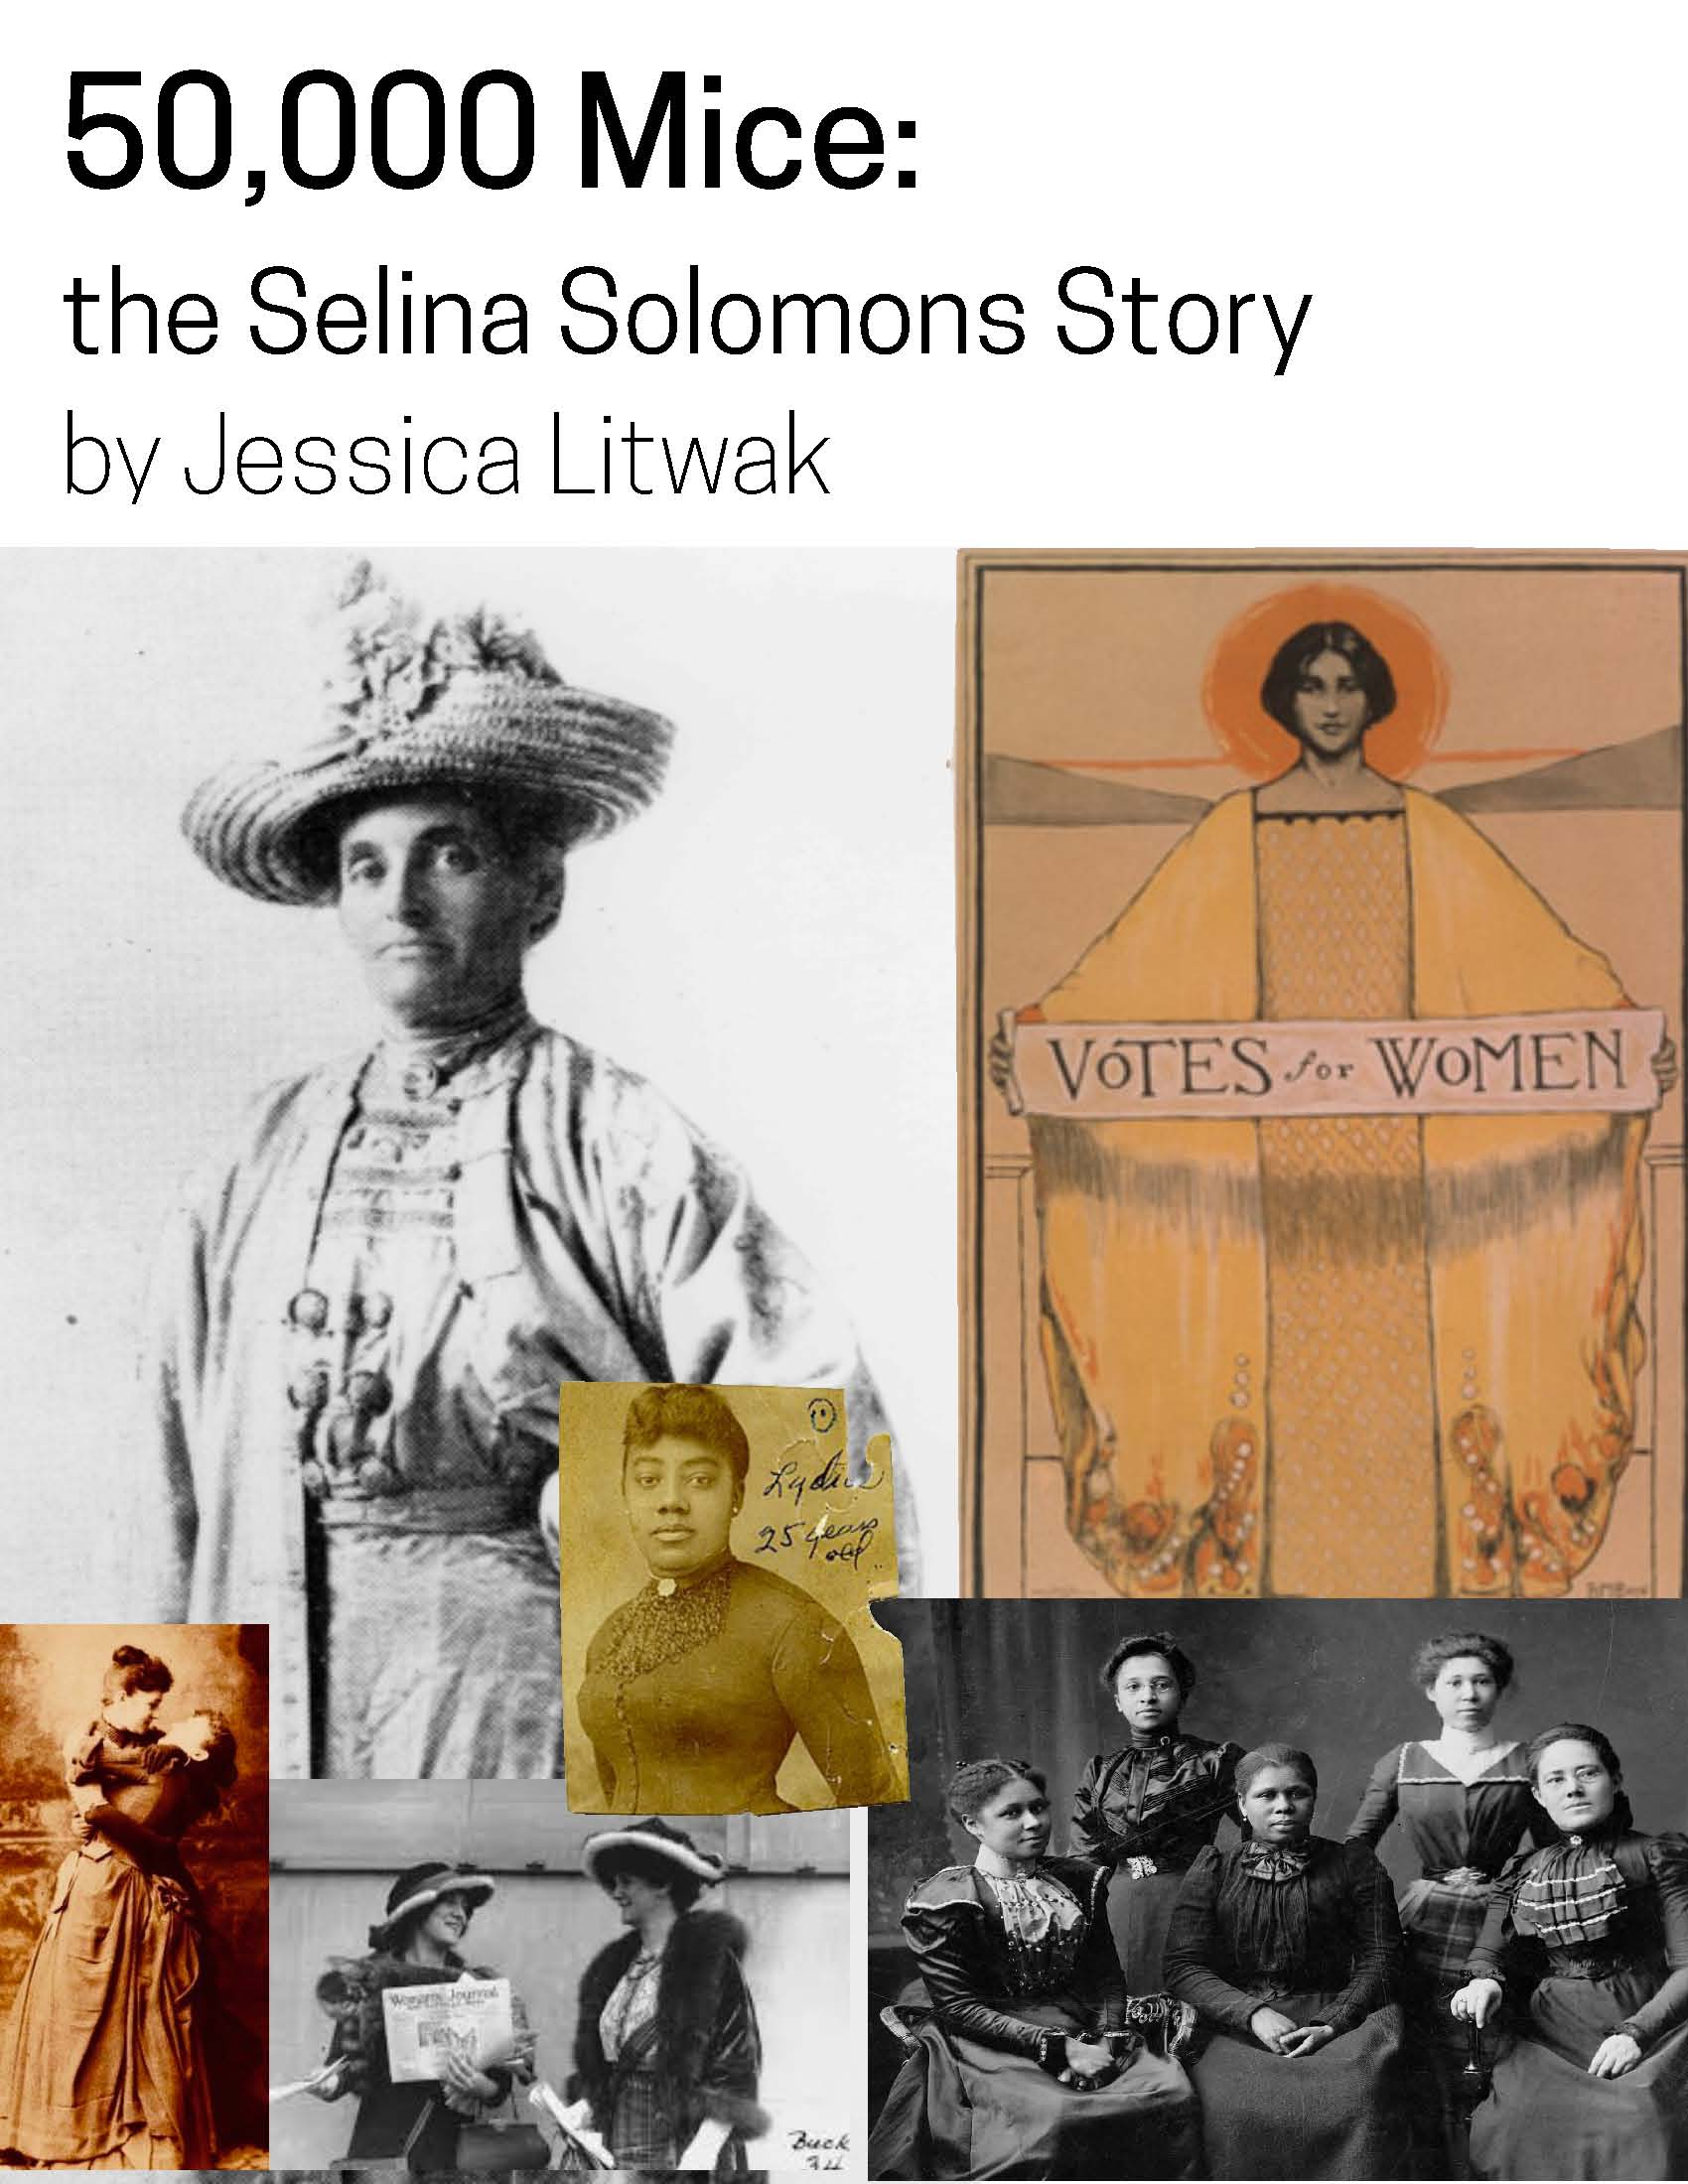 50,000 Mice, the Selena Solomons Story